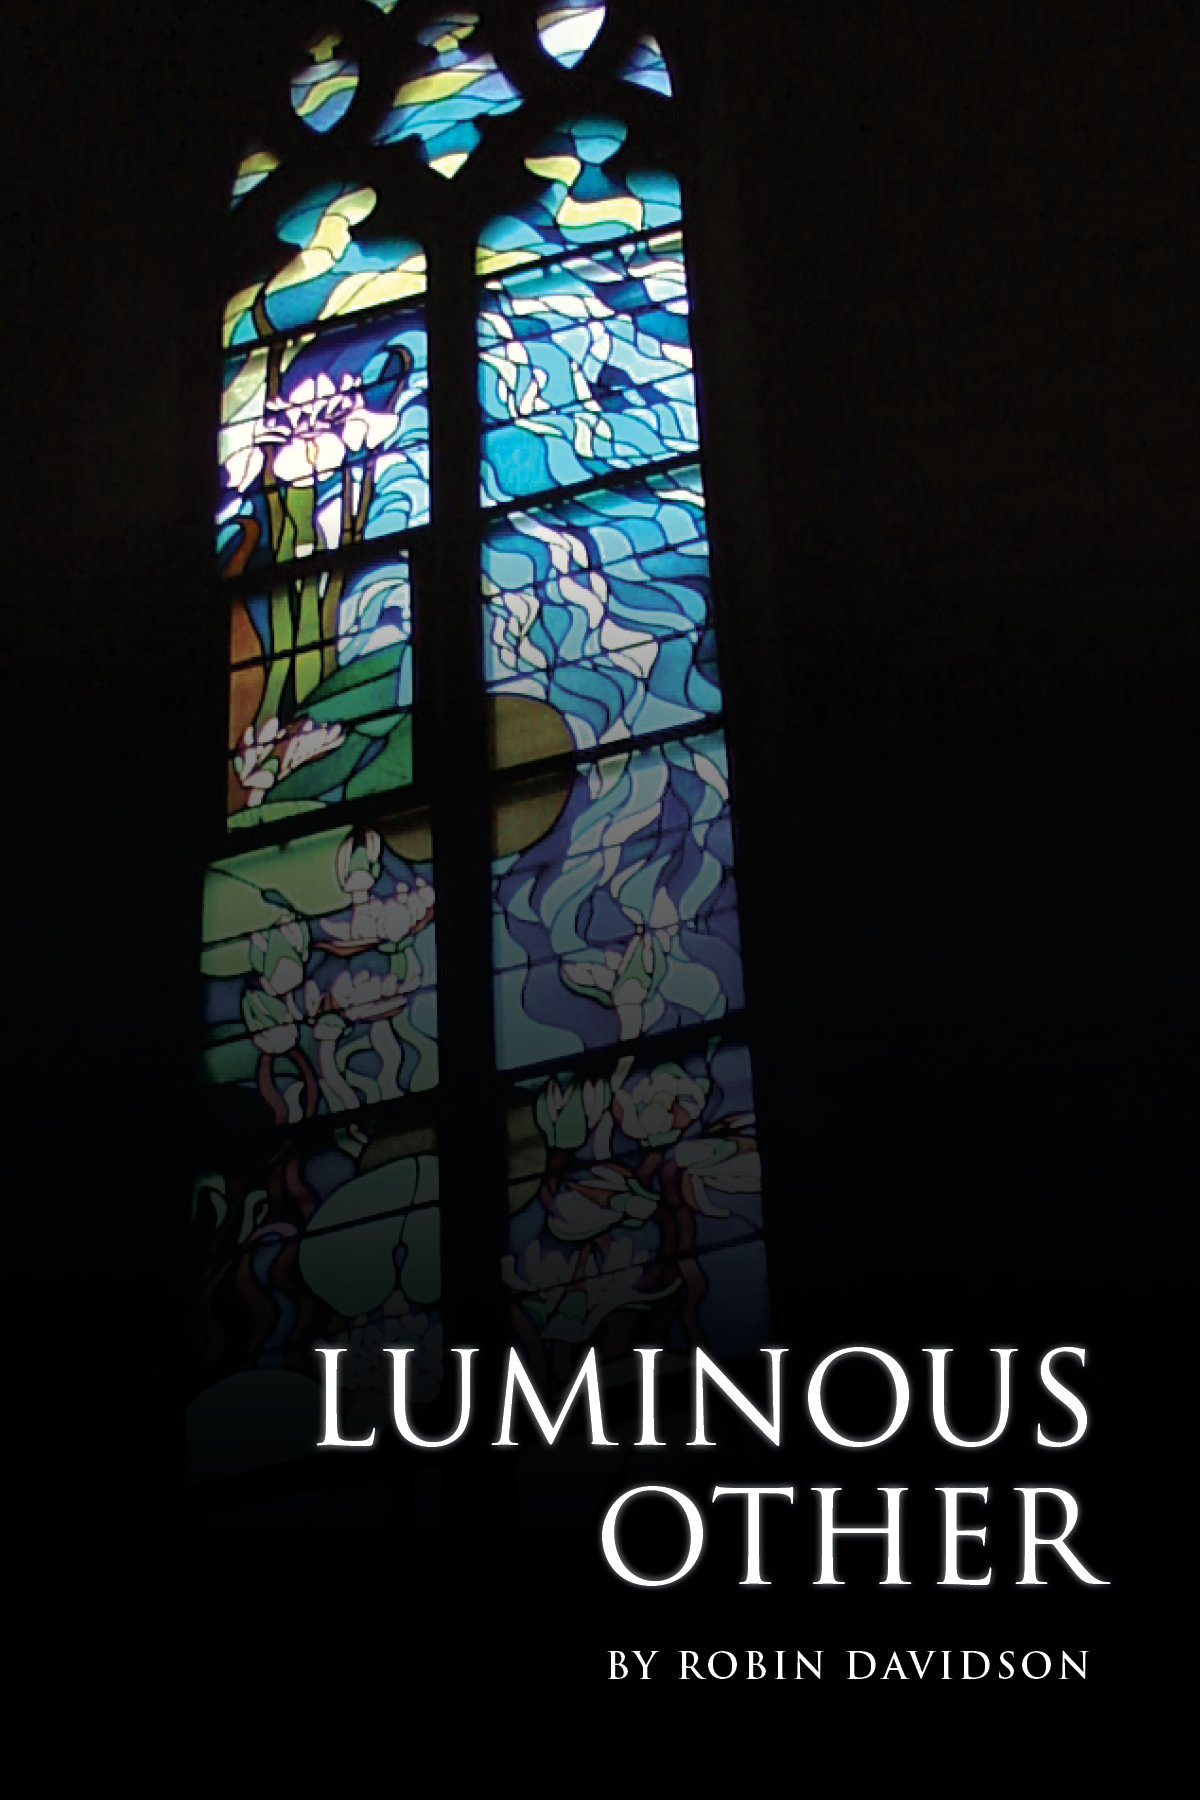 Luminous Other